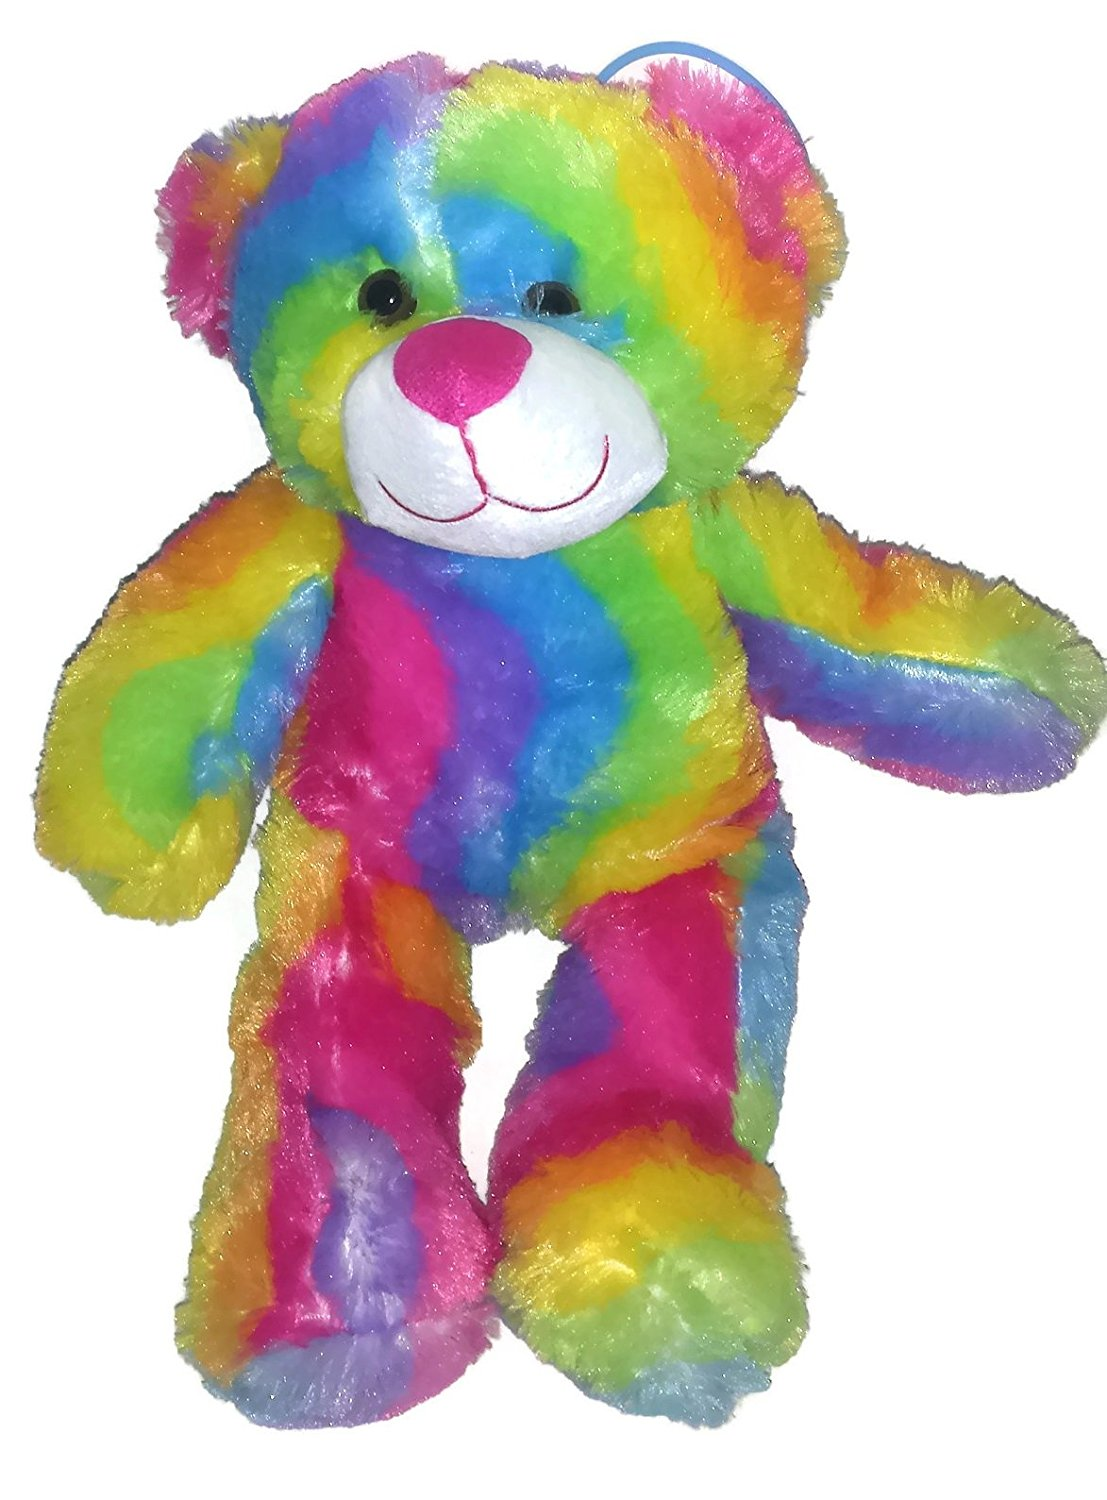 Cheap Stuffed Animal Teddy Bear Find Stuffed Animal Teddy Bear